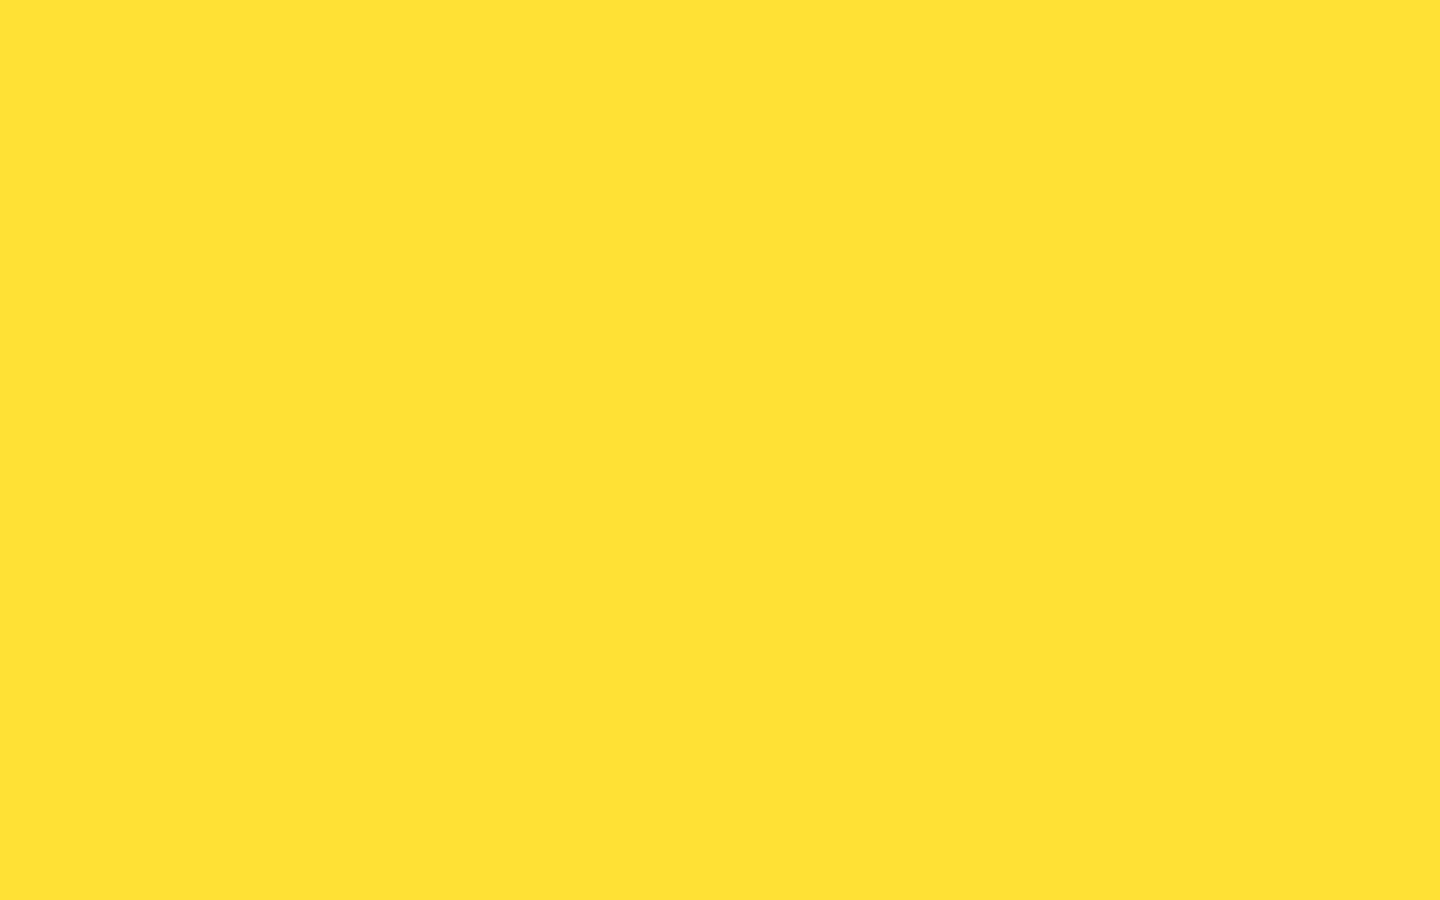 1440x900 Banana Yellow Solid Color Background